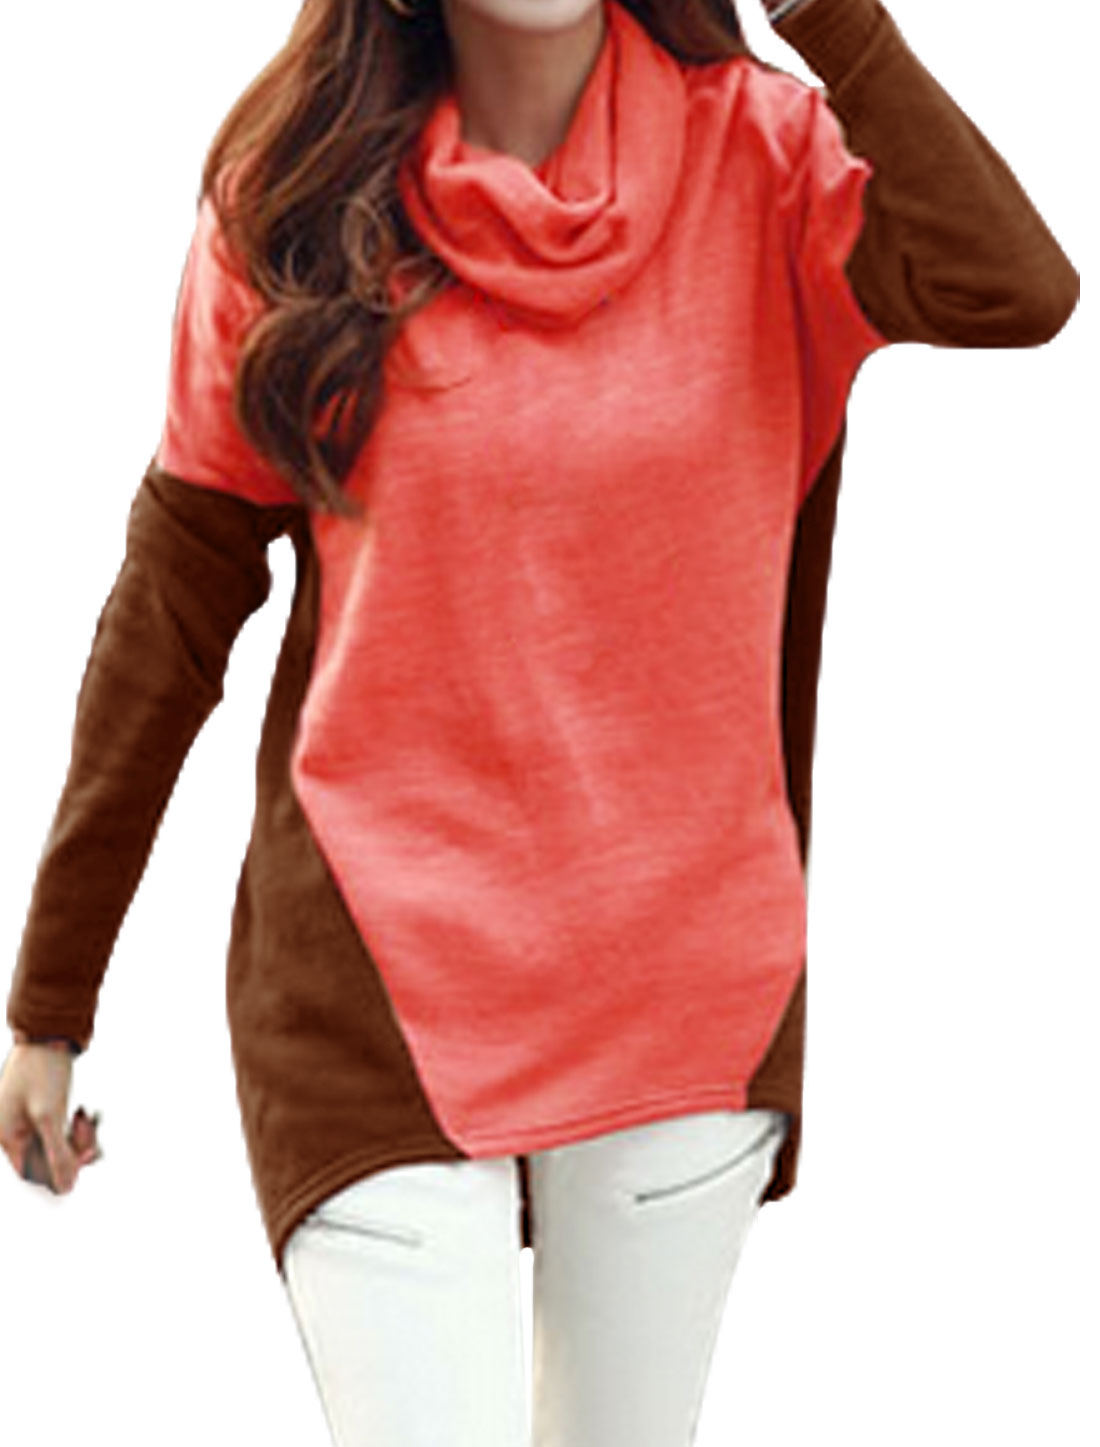 Women Cowl Neck Color Block High Low Hem Tunic Top Pink Brown XS